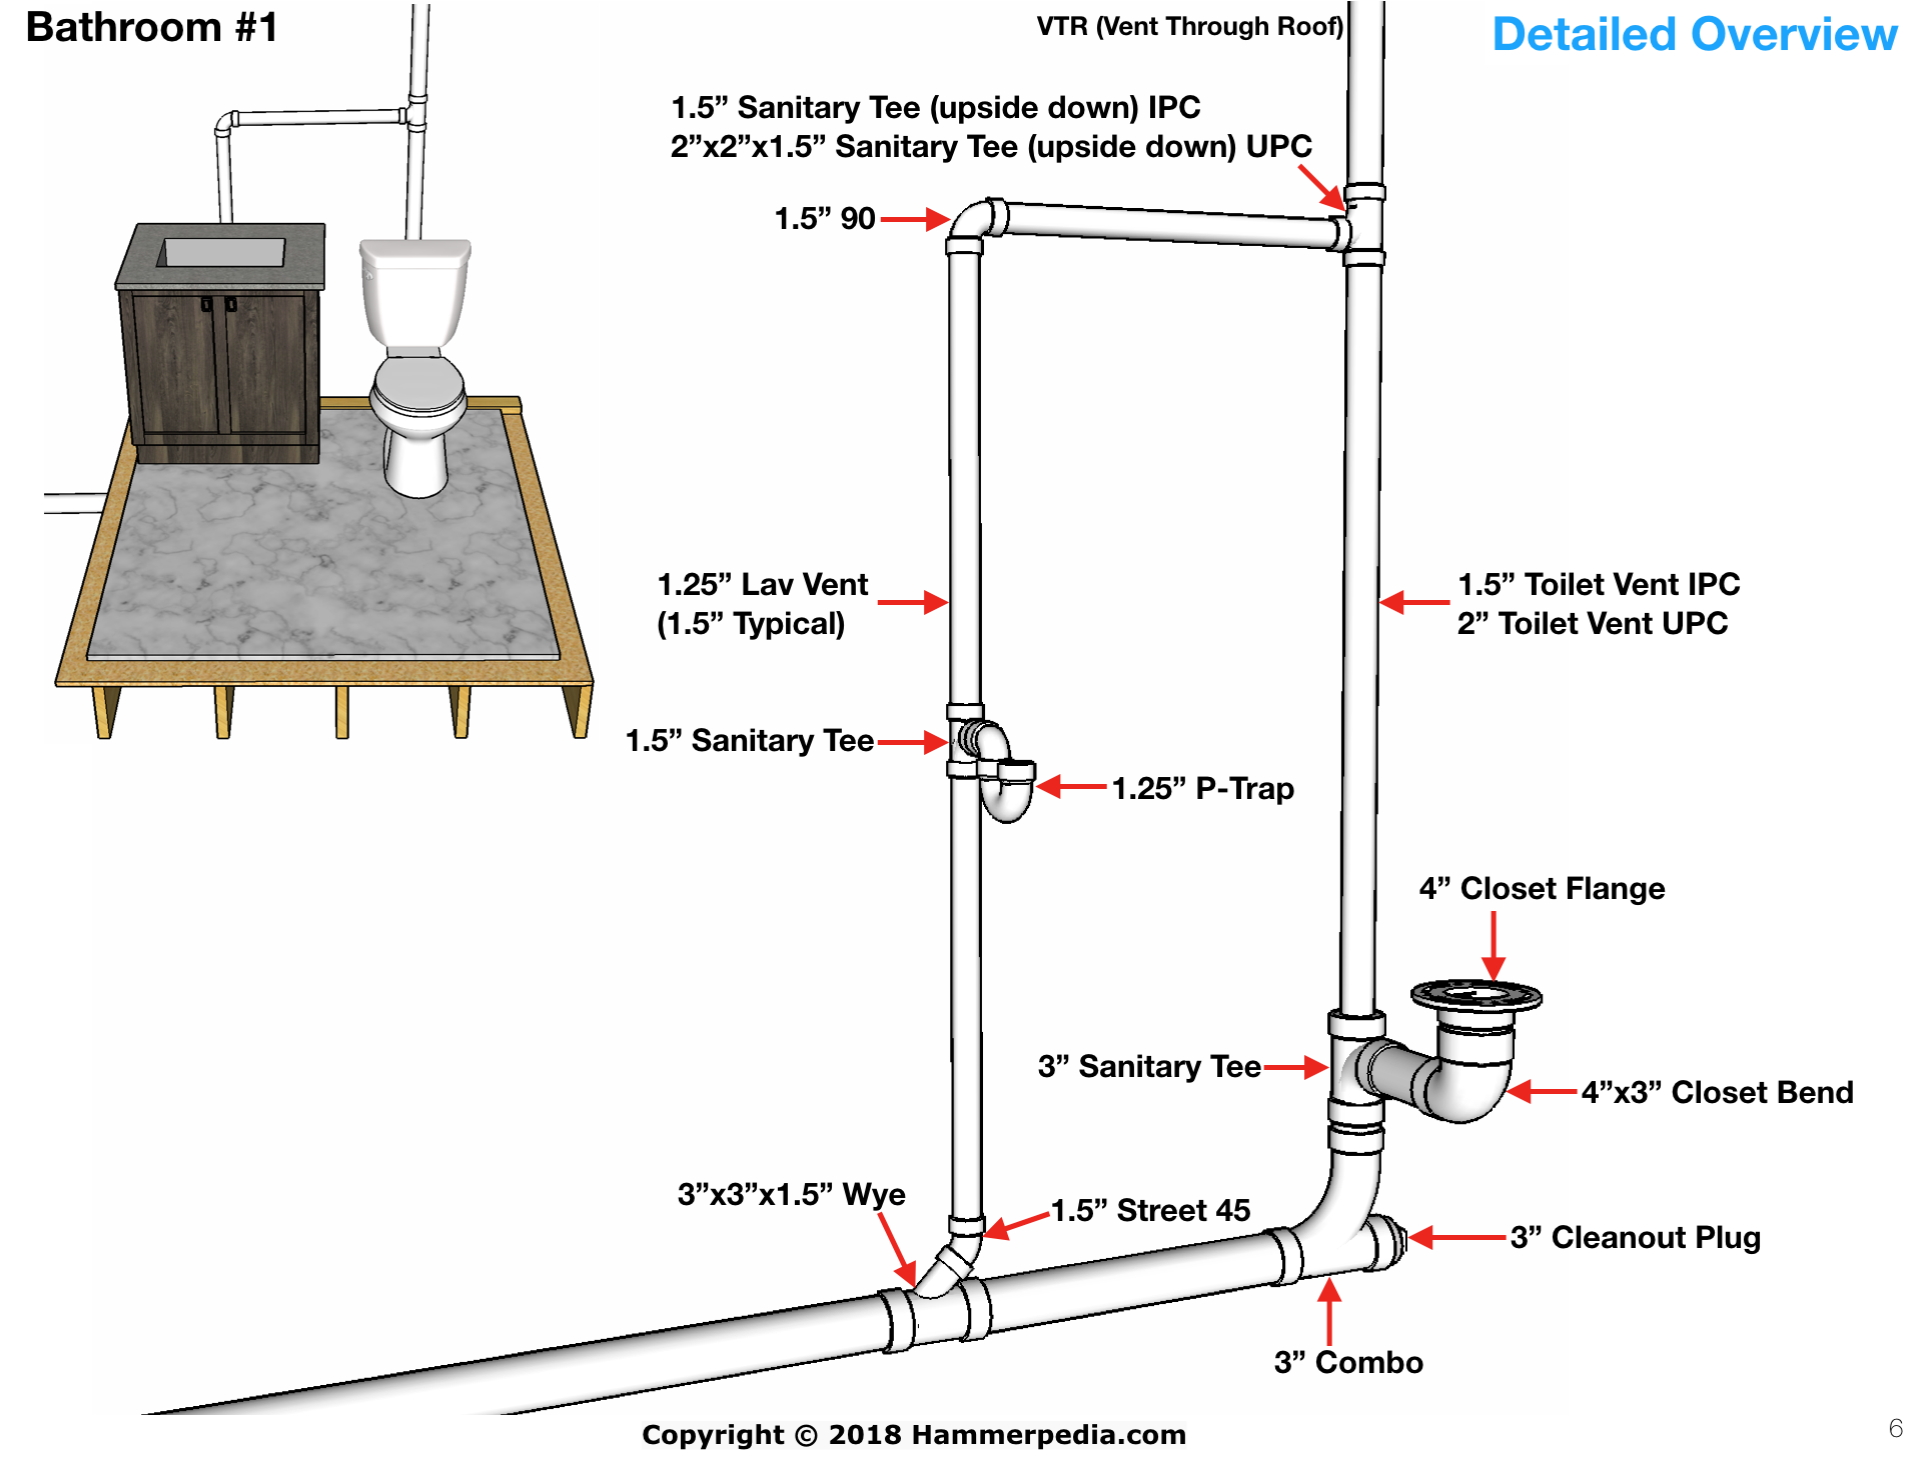 Learn How To Plumb A Half Bath In 2021 Residential Plumbing Bathroom Construction Bathroom Plumbing [ png ]